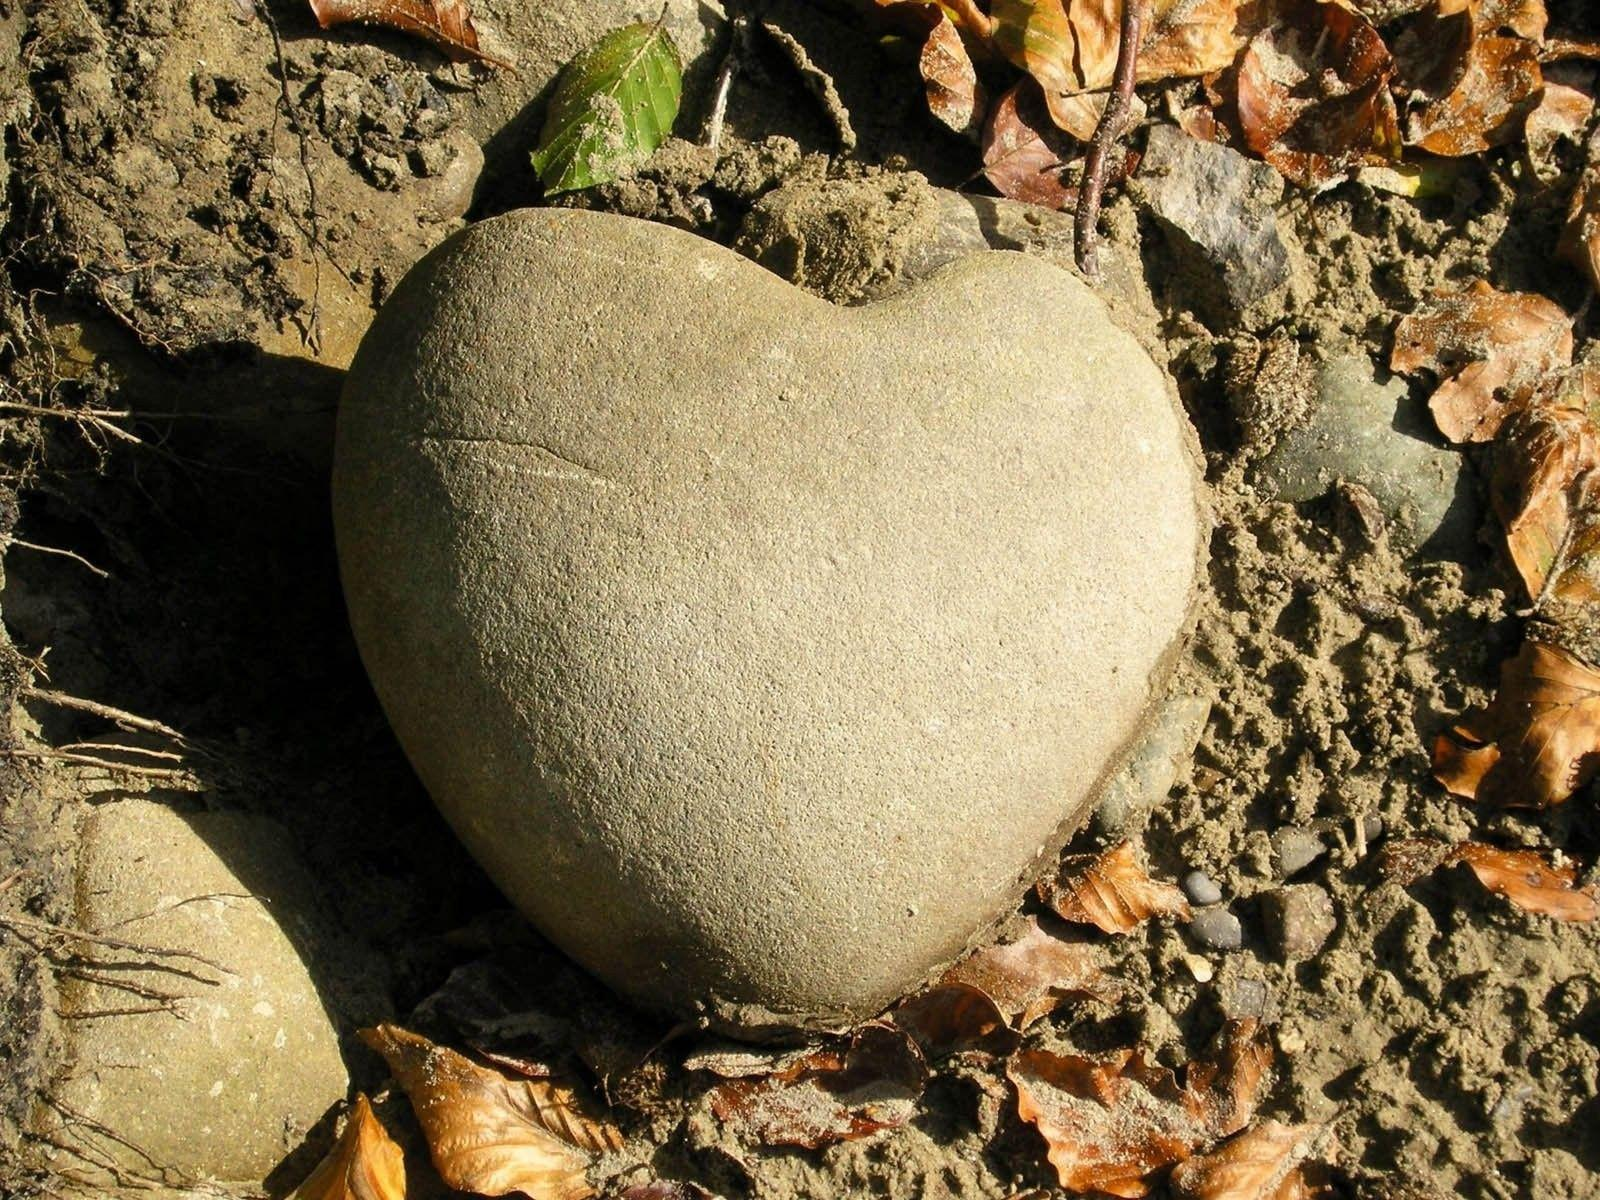 Misc: Heart Stone Natural Rock Stones Mud Nature Roots Leaves